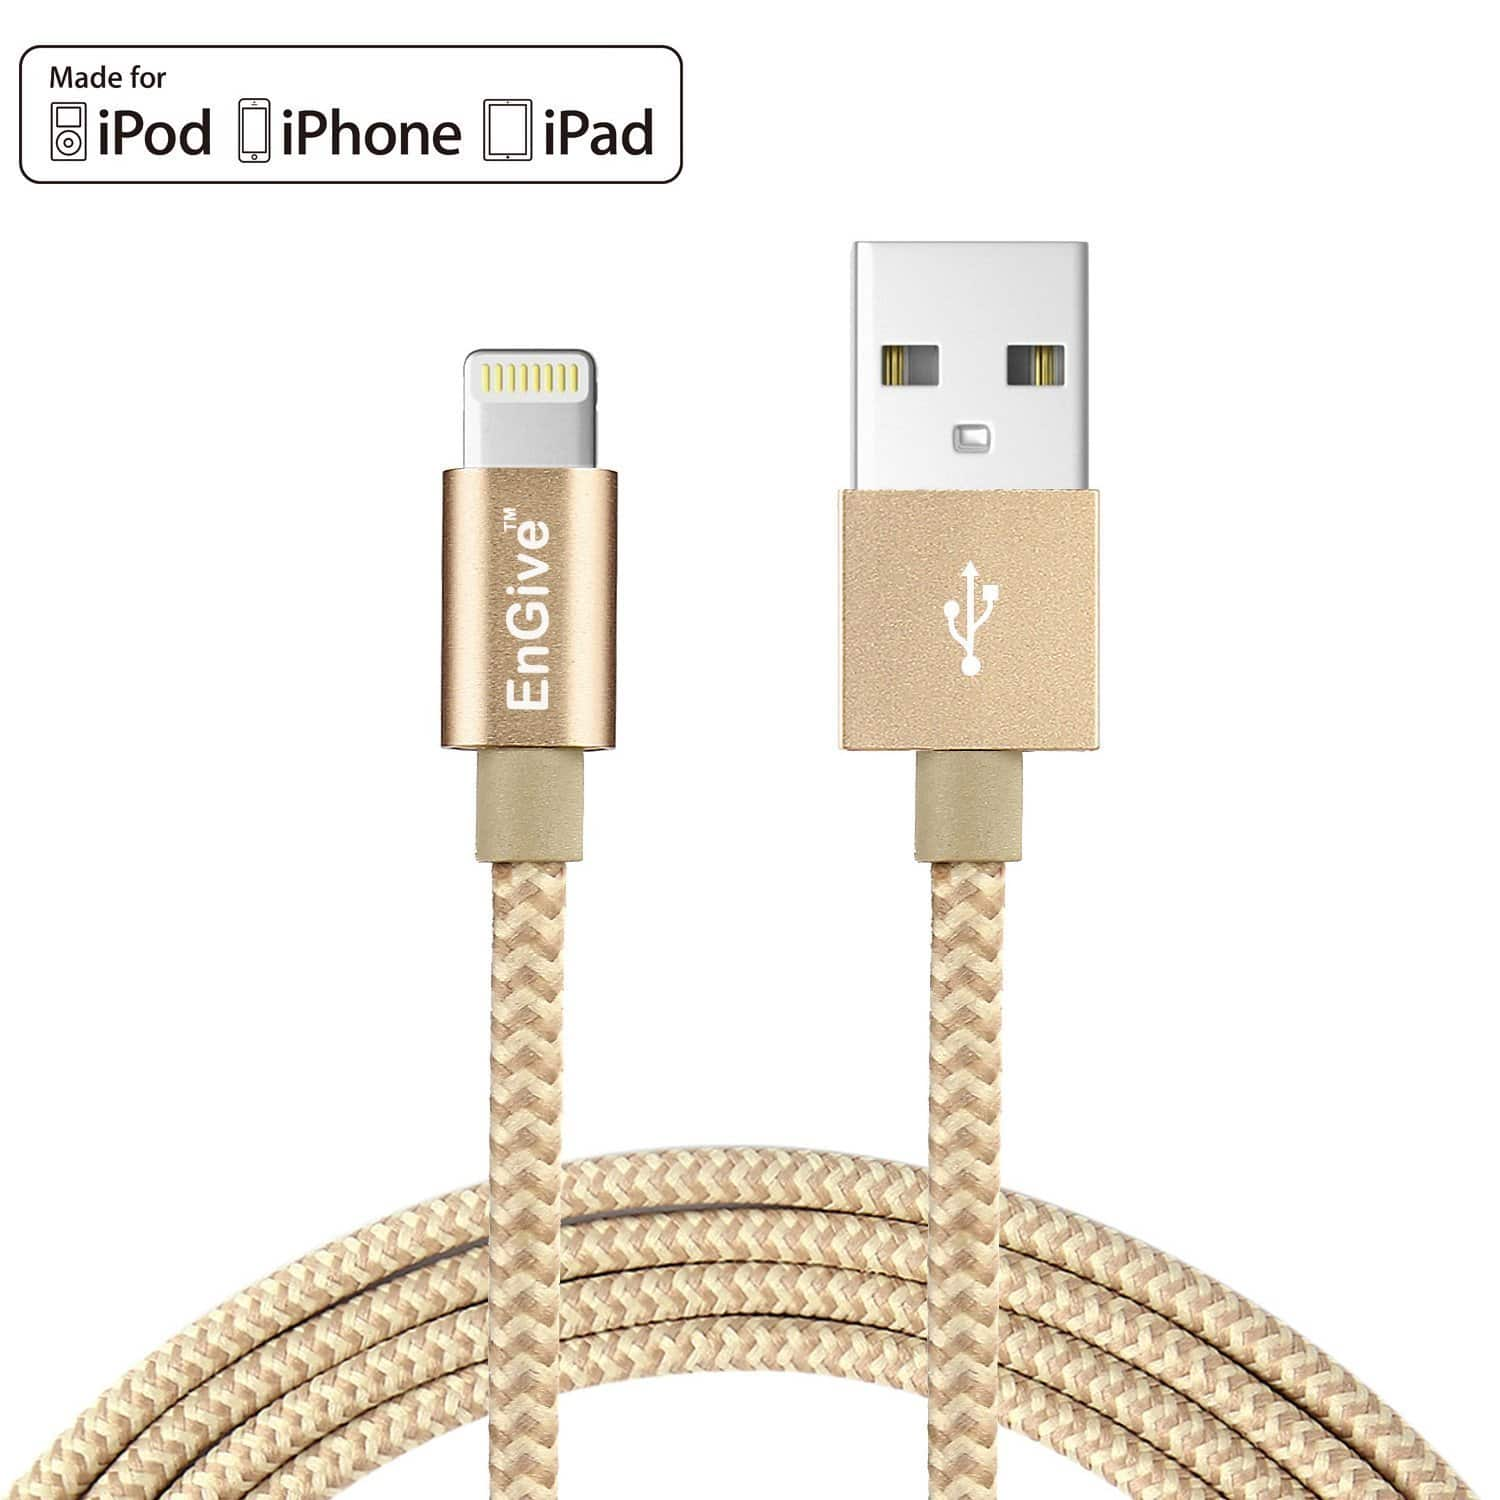 Engive 6.6 FT Nylon Braided MFi Lightning Cable - Gold - $3.01 + FS W/ Prime